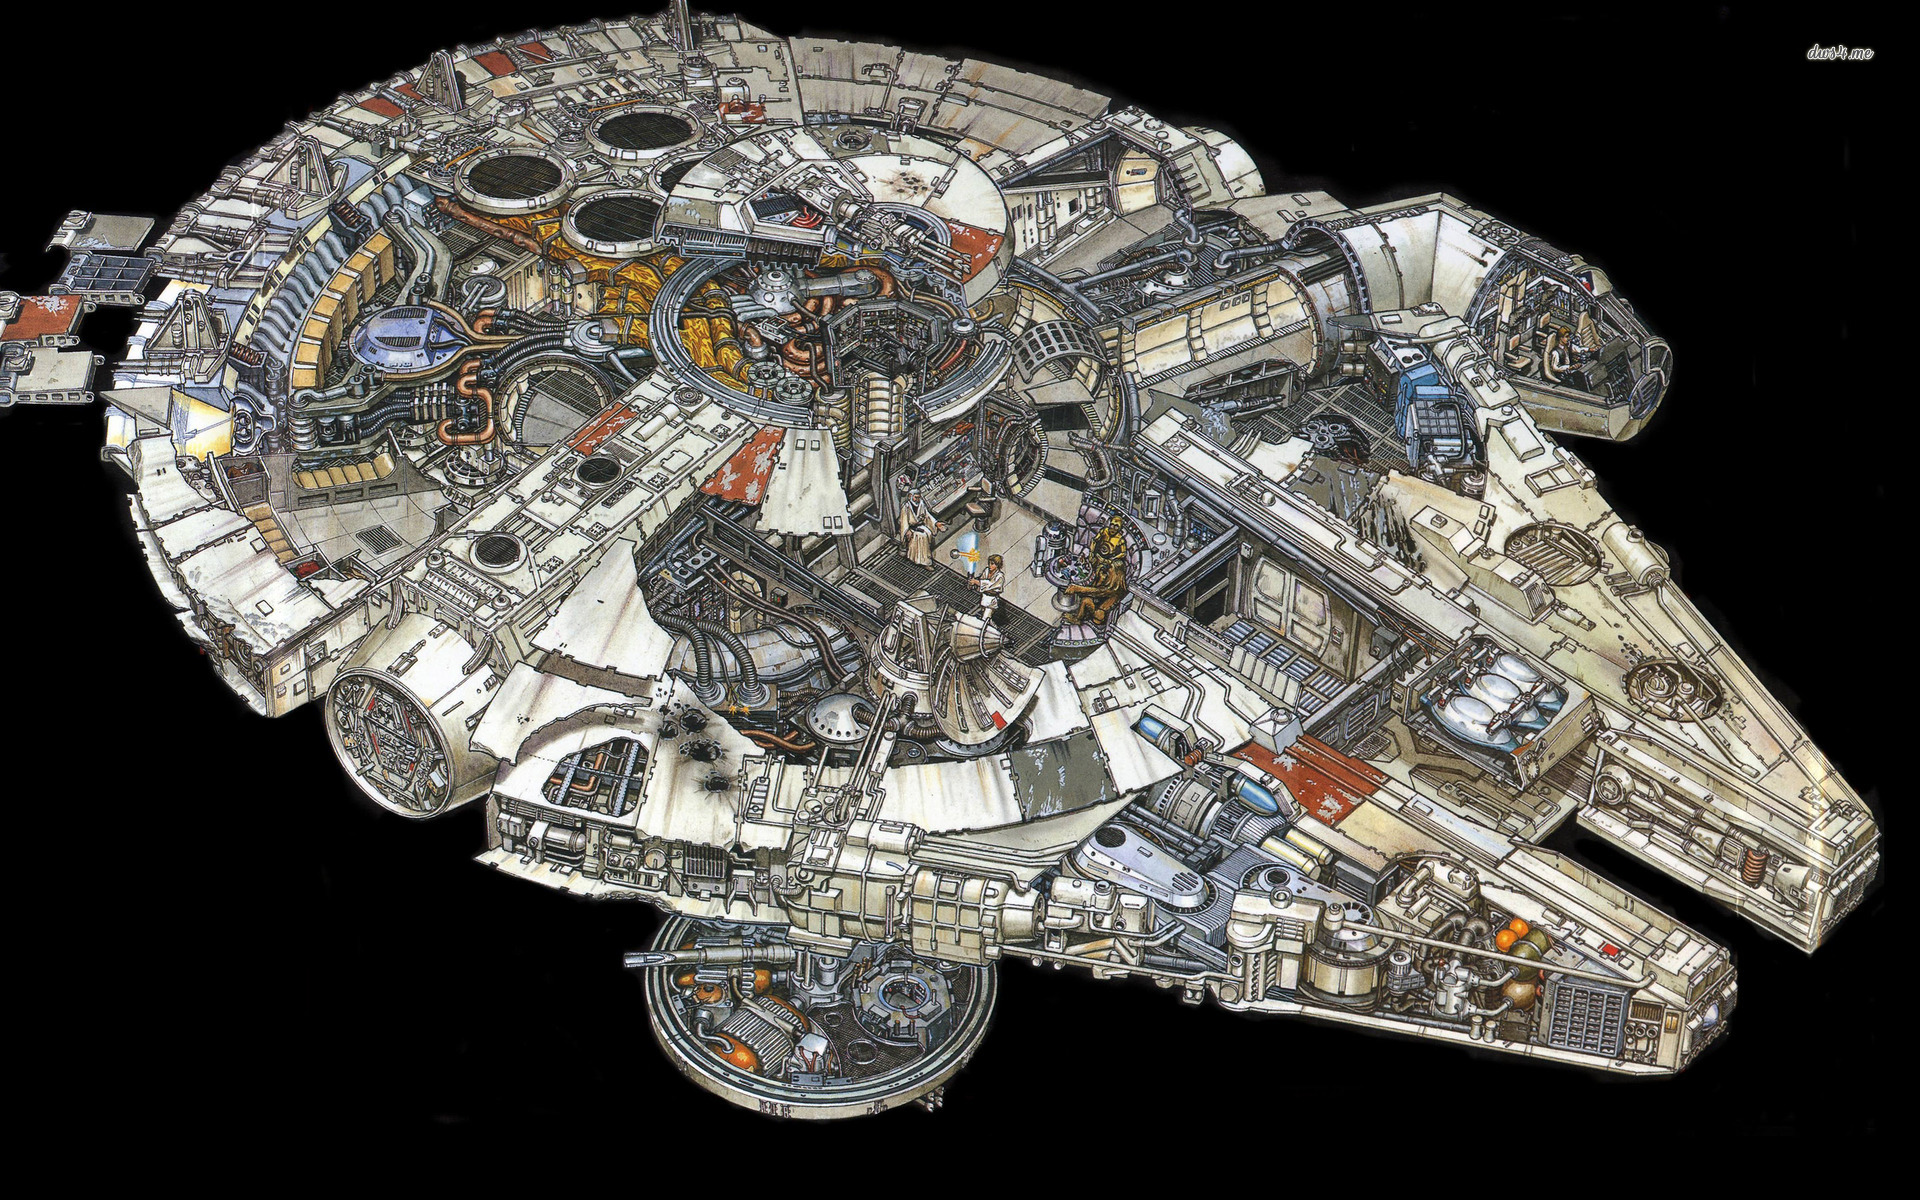 Displaying images for millenium falcon cockpit wallpaper - Millennium Falcon Hd Wallpapers